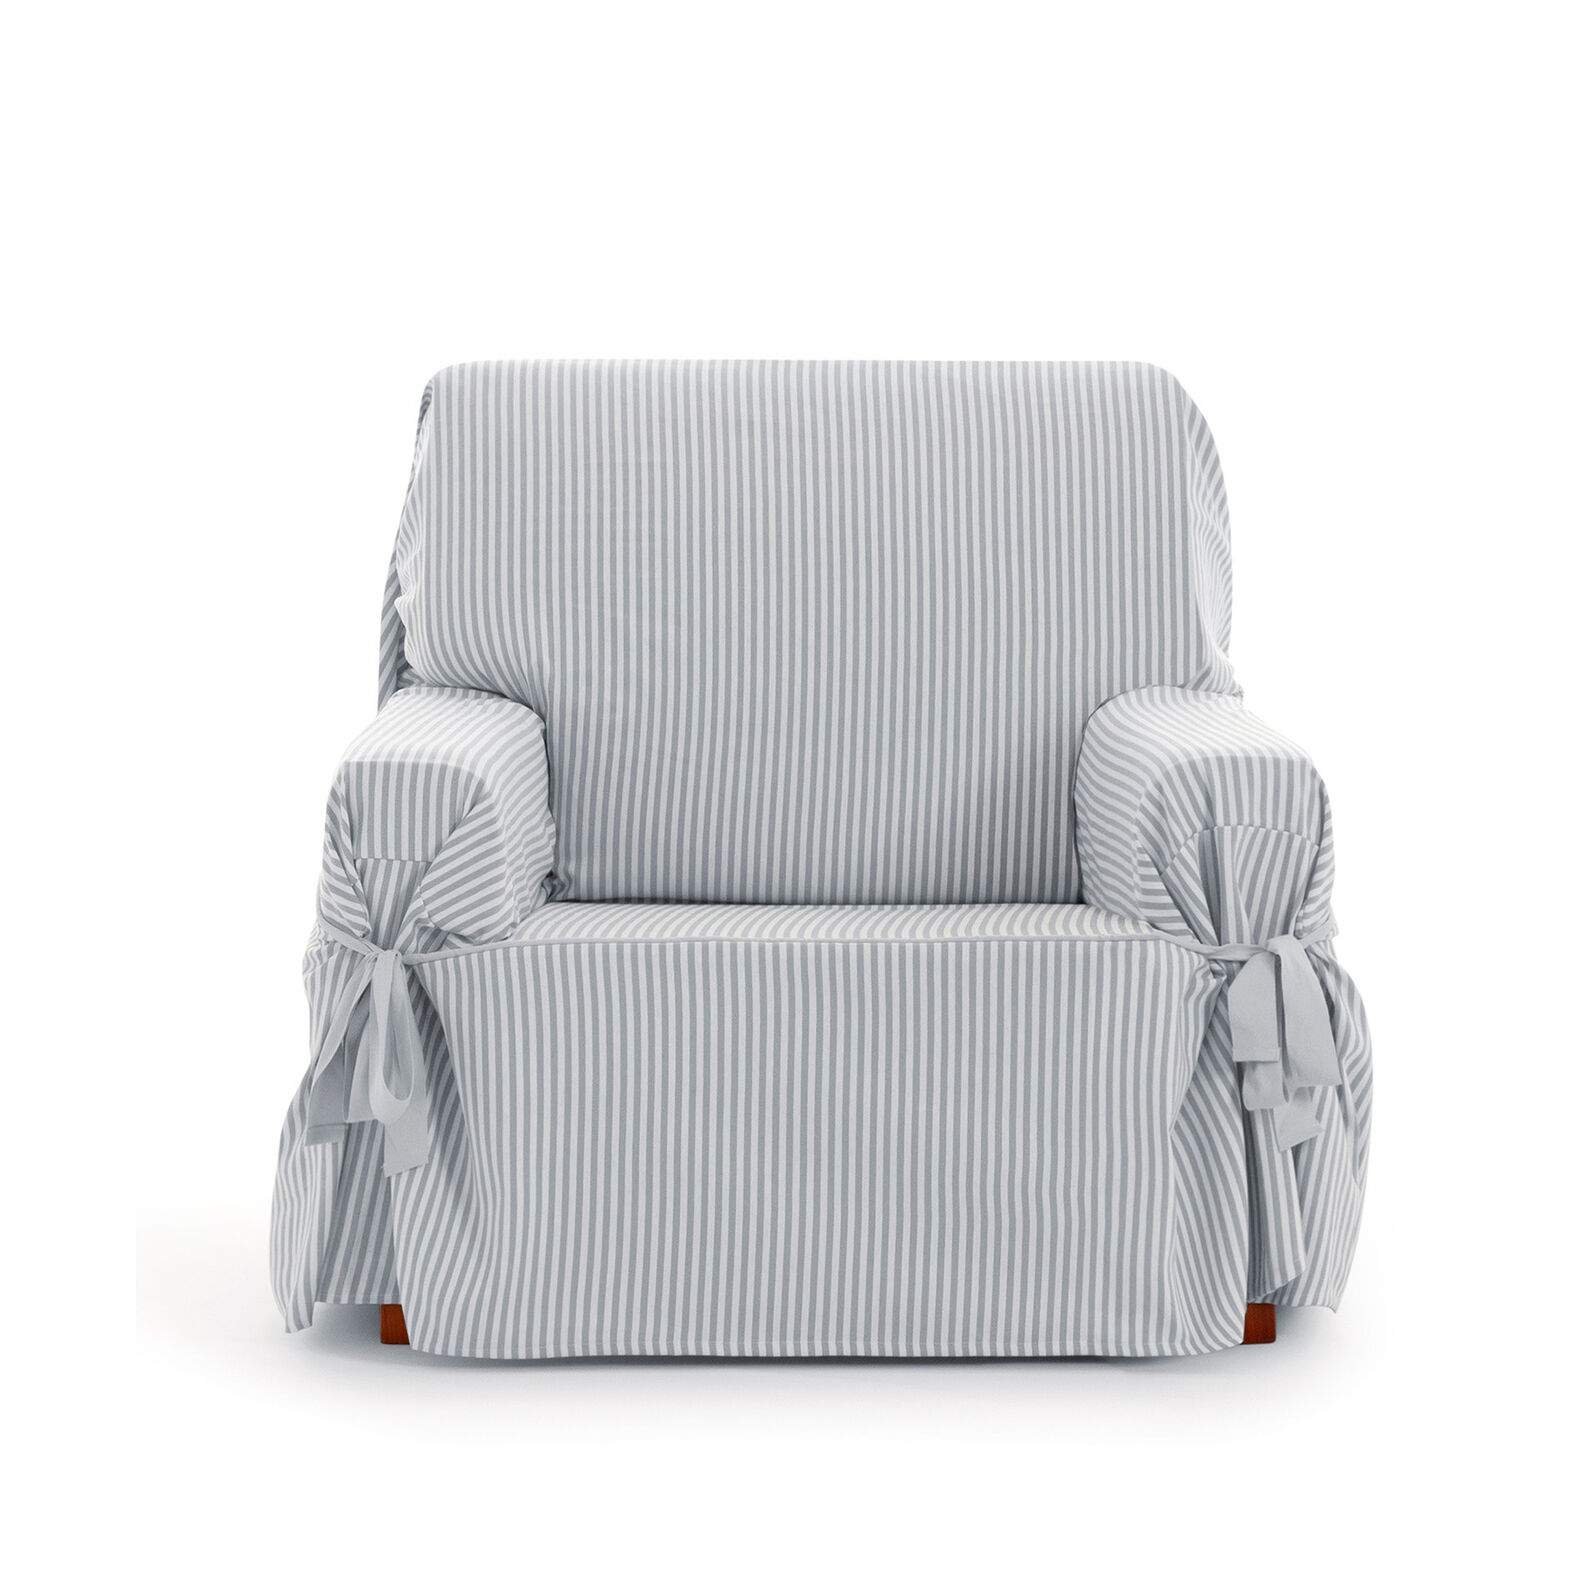 Striped fabric armchair cover